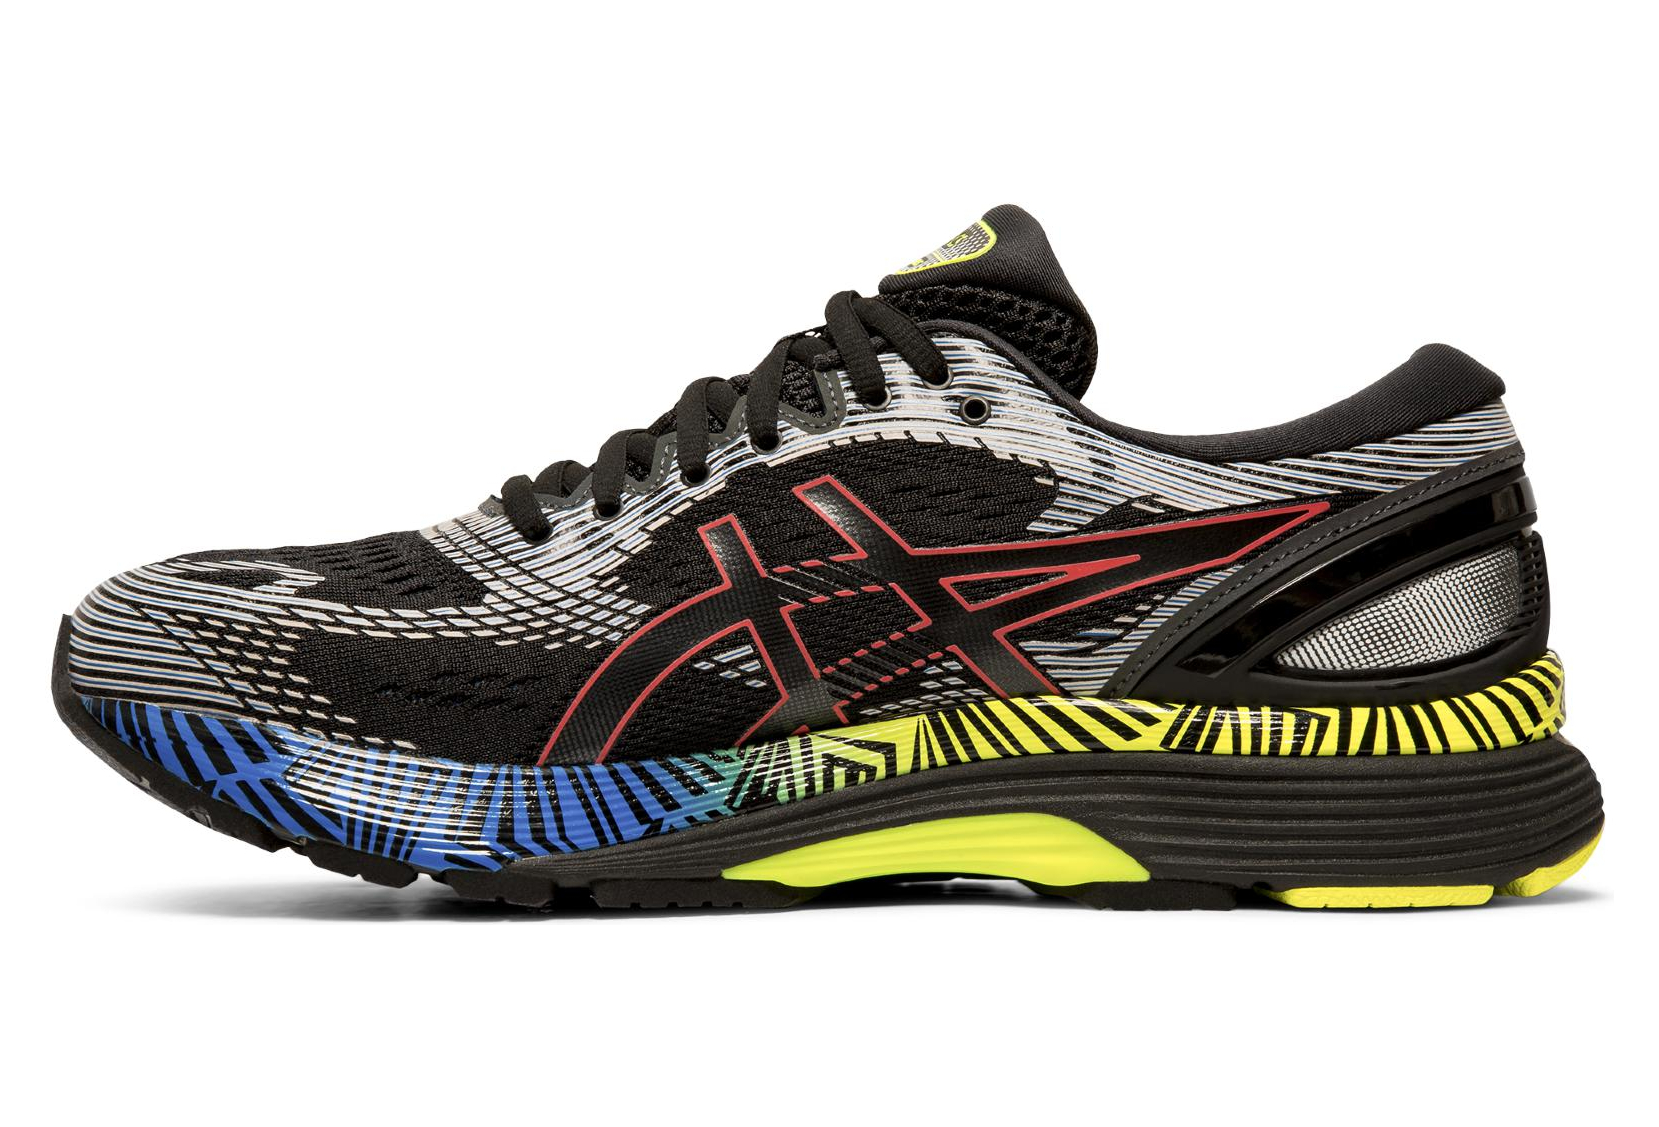 Asics Gel Nimbus 21 Lite Show Black Multi-color Men